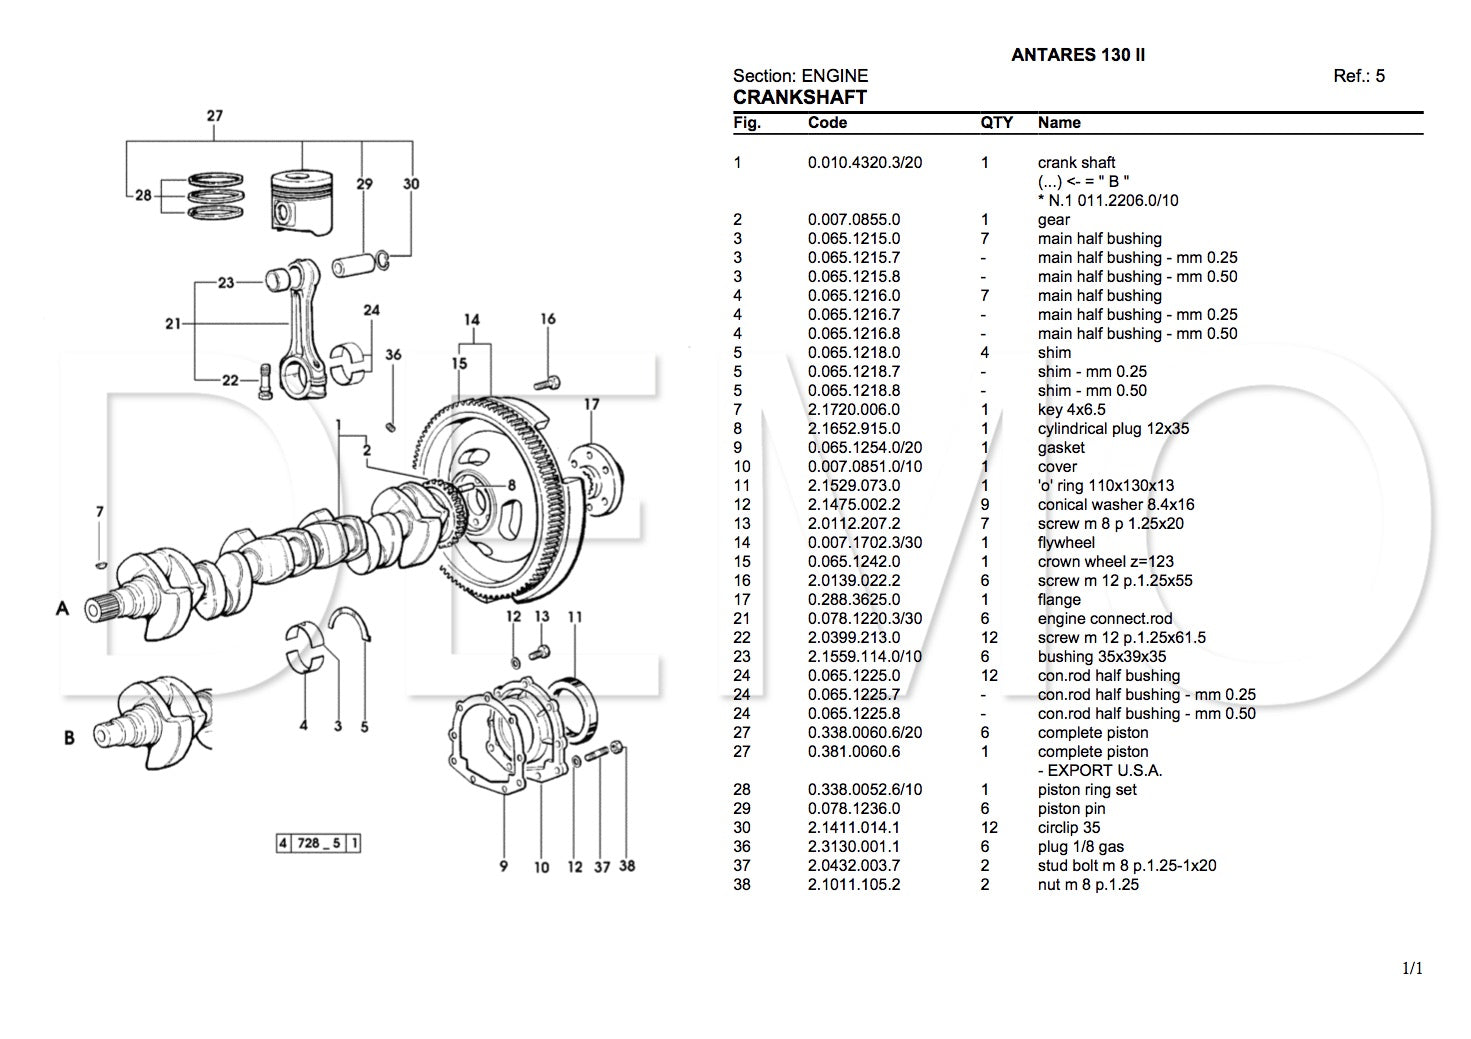 Same Solaris 55 Parts Catalogue, PDF Manual, Parts Catalog